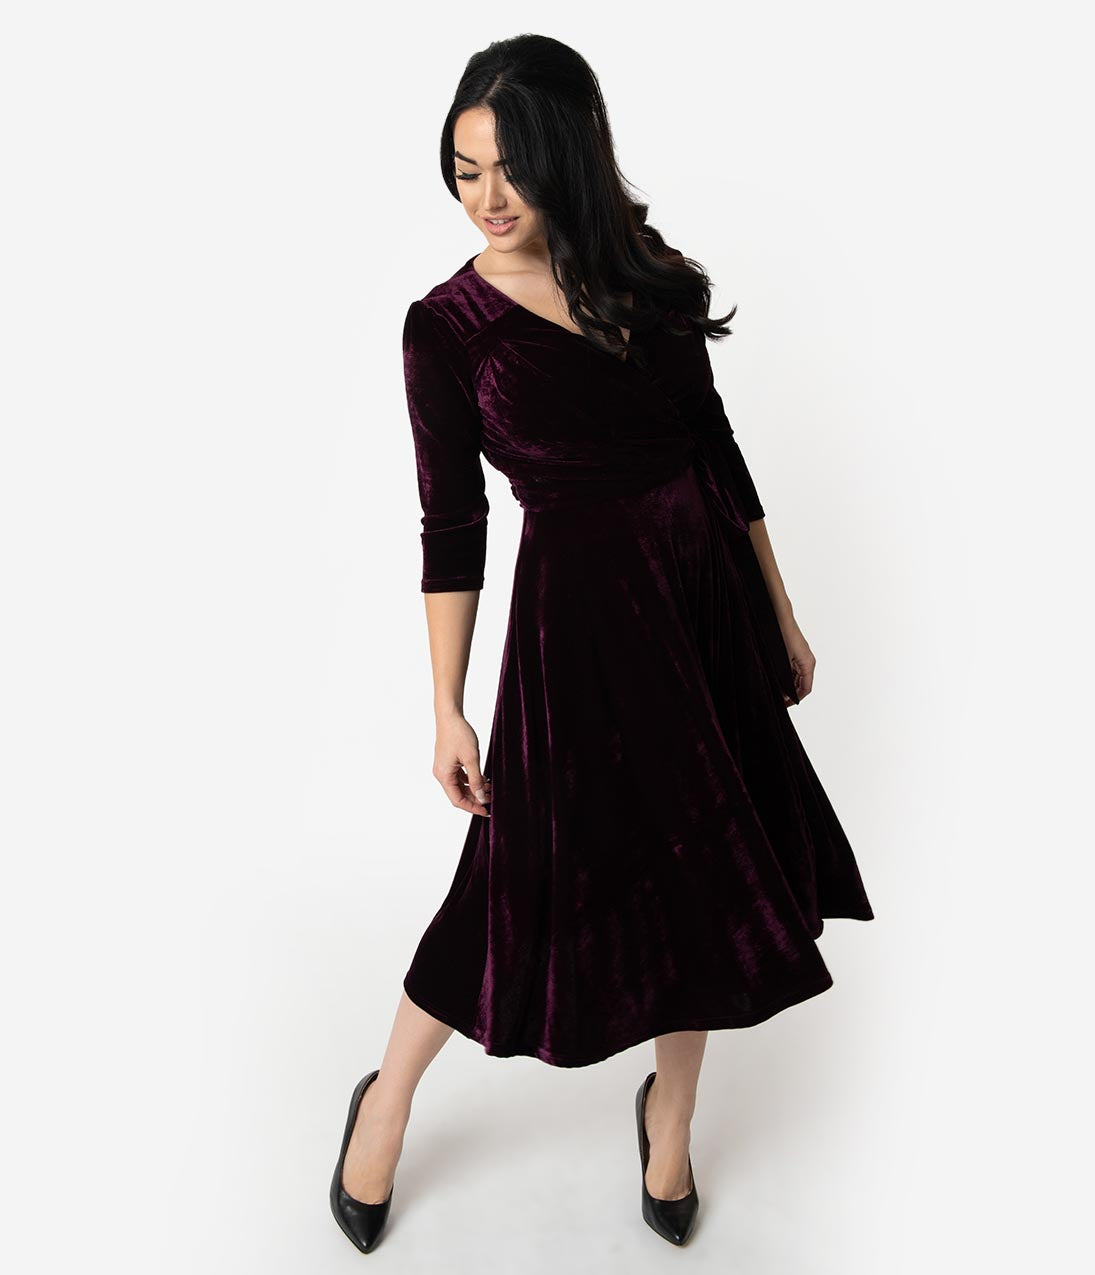 1940s Dresses | 40s Dress, Swing Dress Unique Vintage 1940S Style Eggplant Purple Velvet Kelsie Wrap Dress $98.00 AT vintagedancer.com